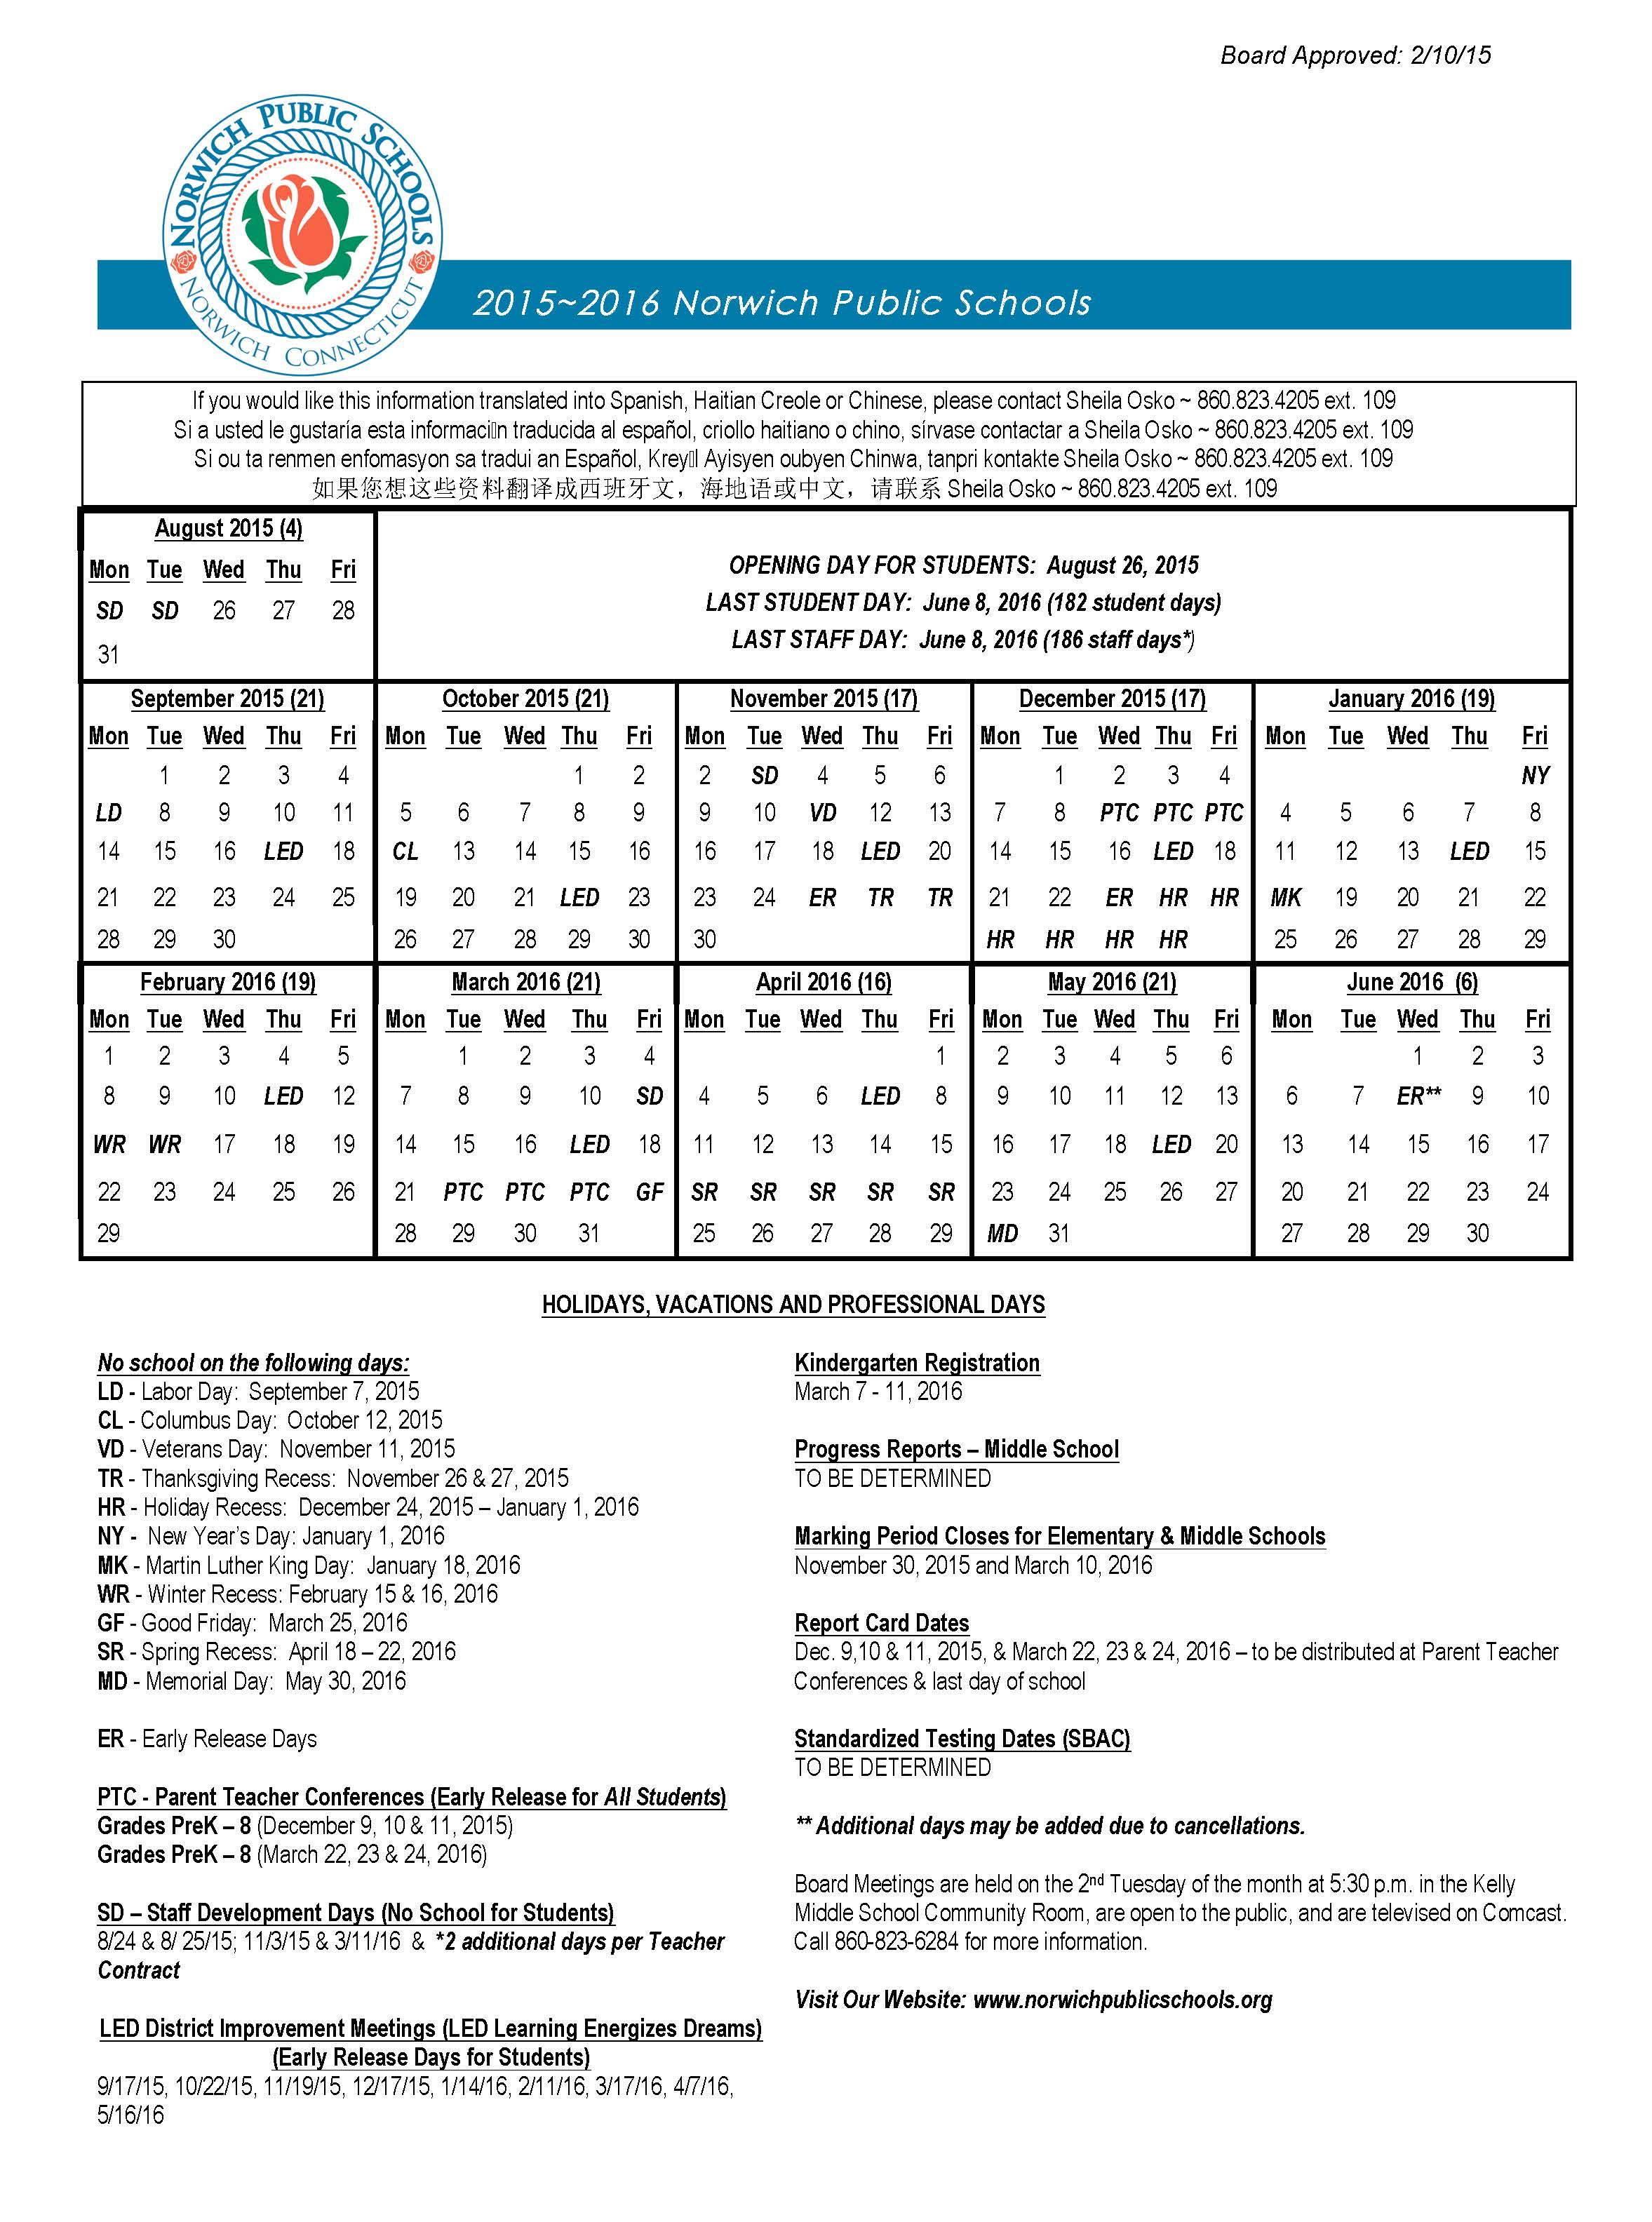 School Calendar For 2019 To 2016 Norwich Public Schools: Calendars